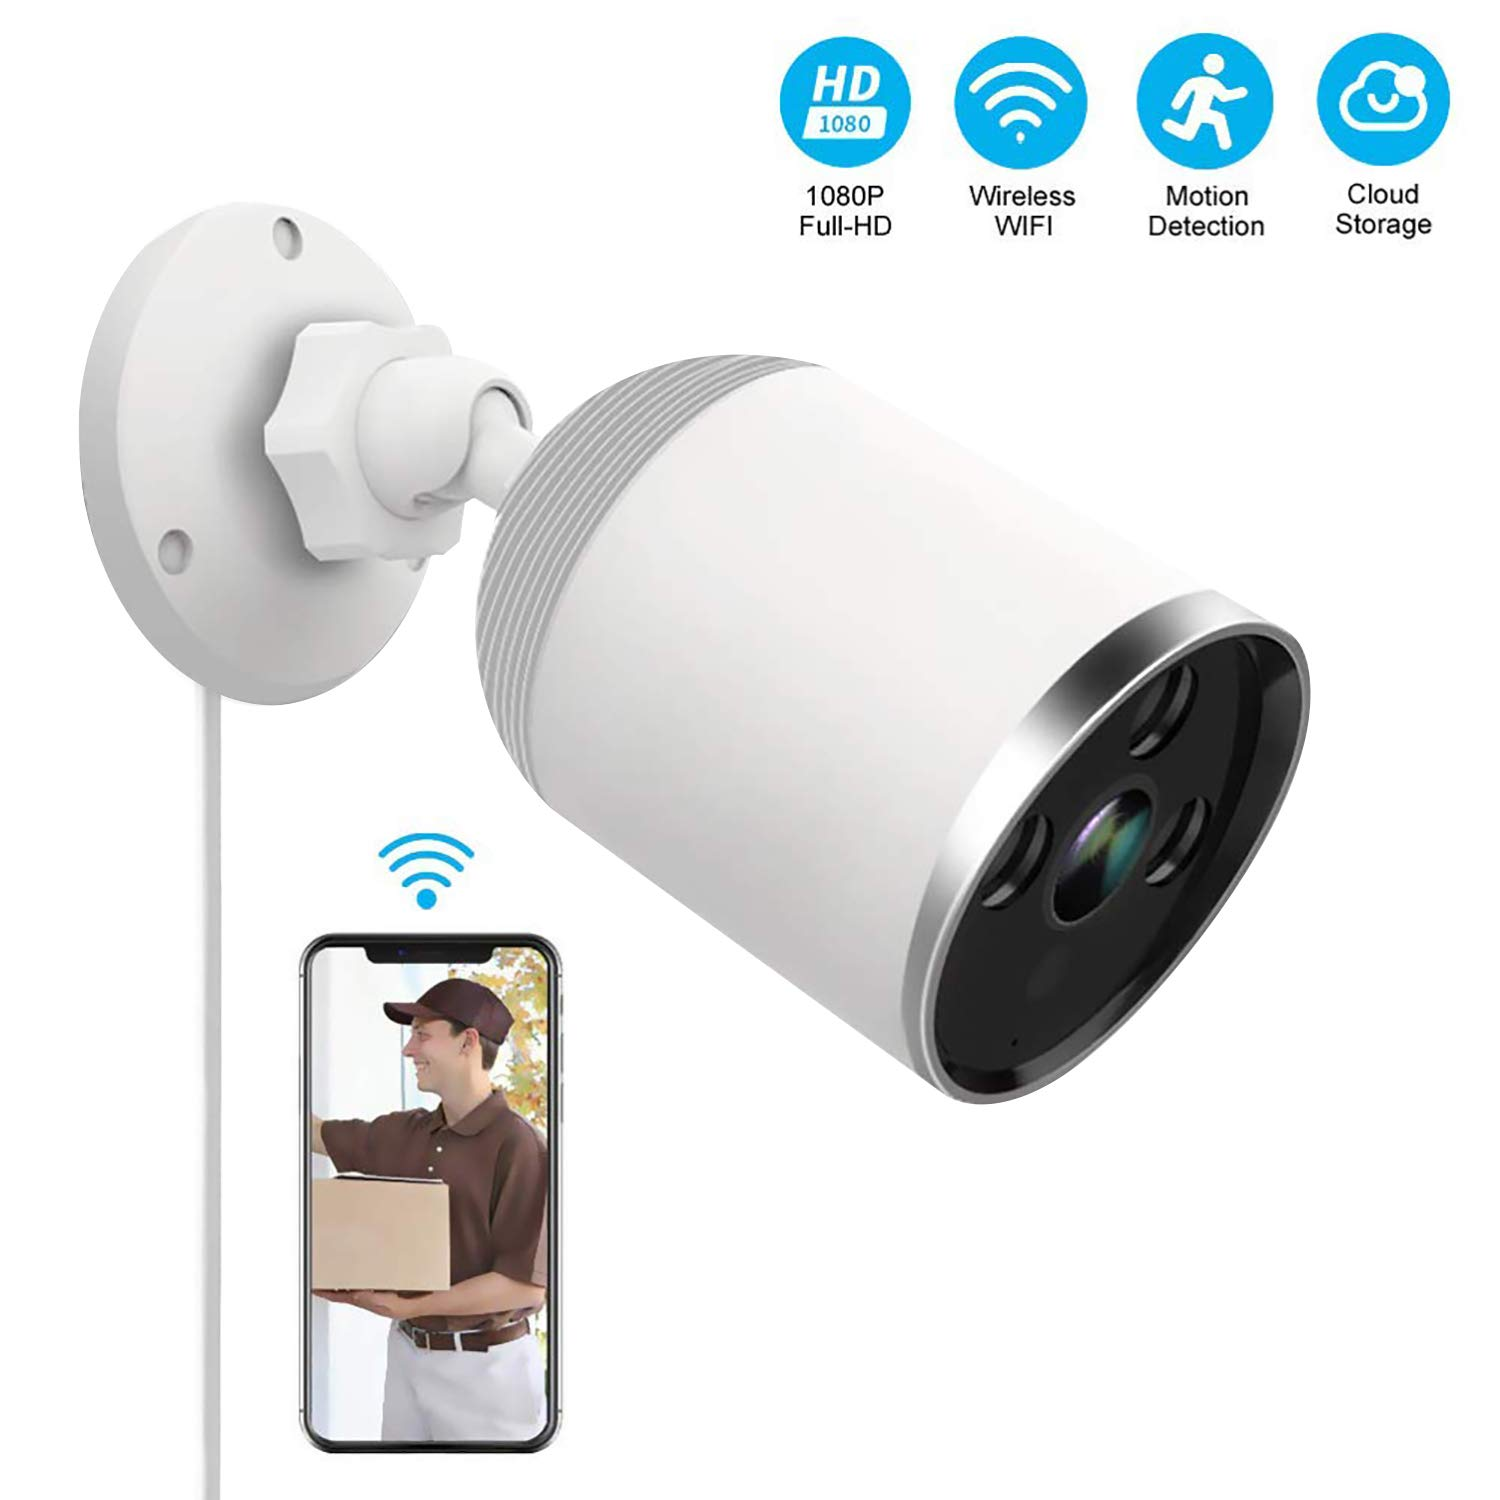 Outdoor and Indoor Home Security Camera, 1080P 2.4G WiFi Night Vision Security Cameras with Two-Way Audio,Cloud Storage, IP66 Waterproof, Motion Detection, Activity Alert, Deterrent Alarm by GH DYNAMICS